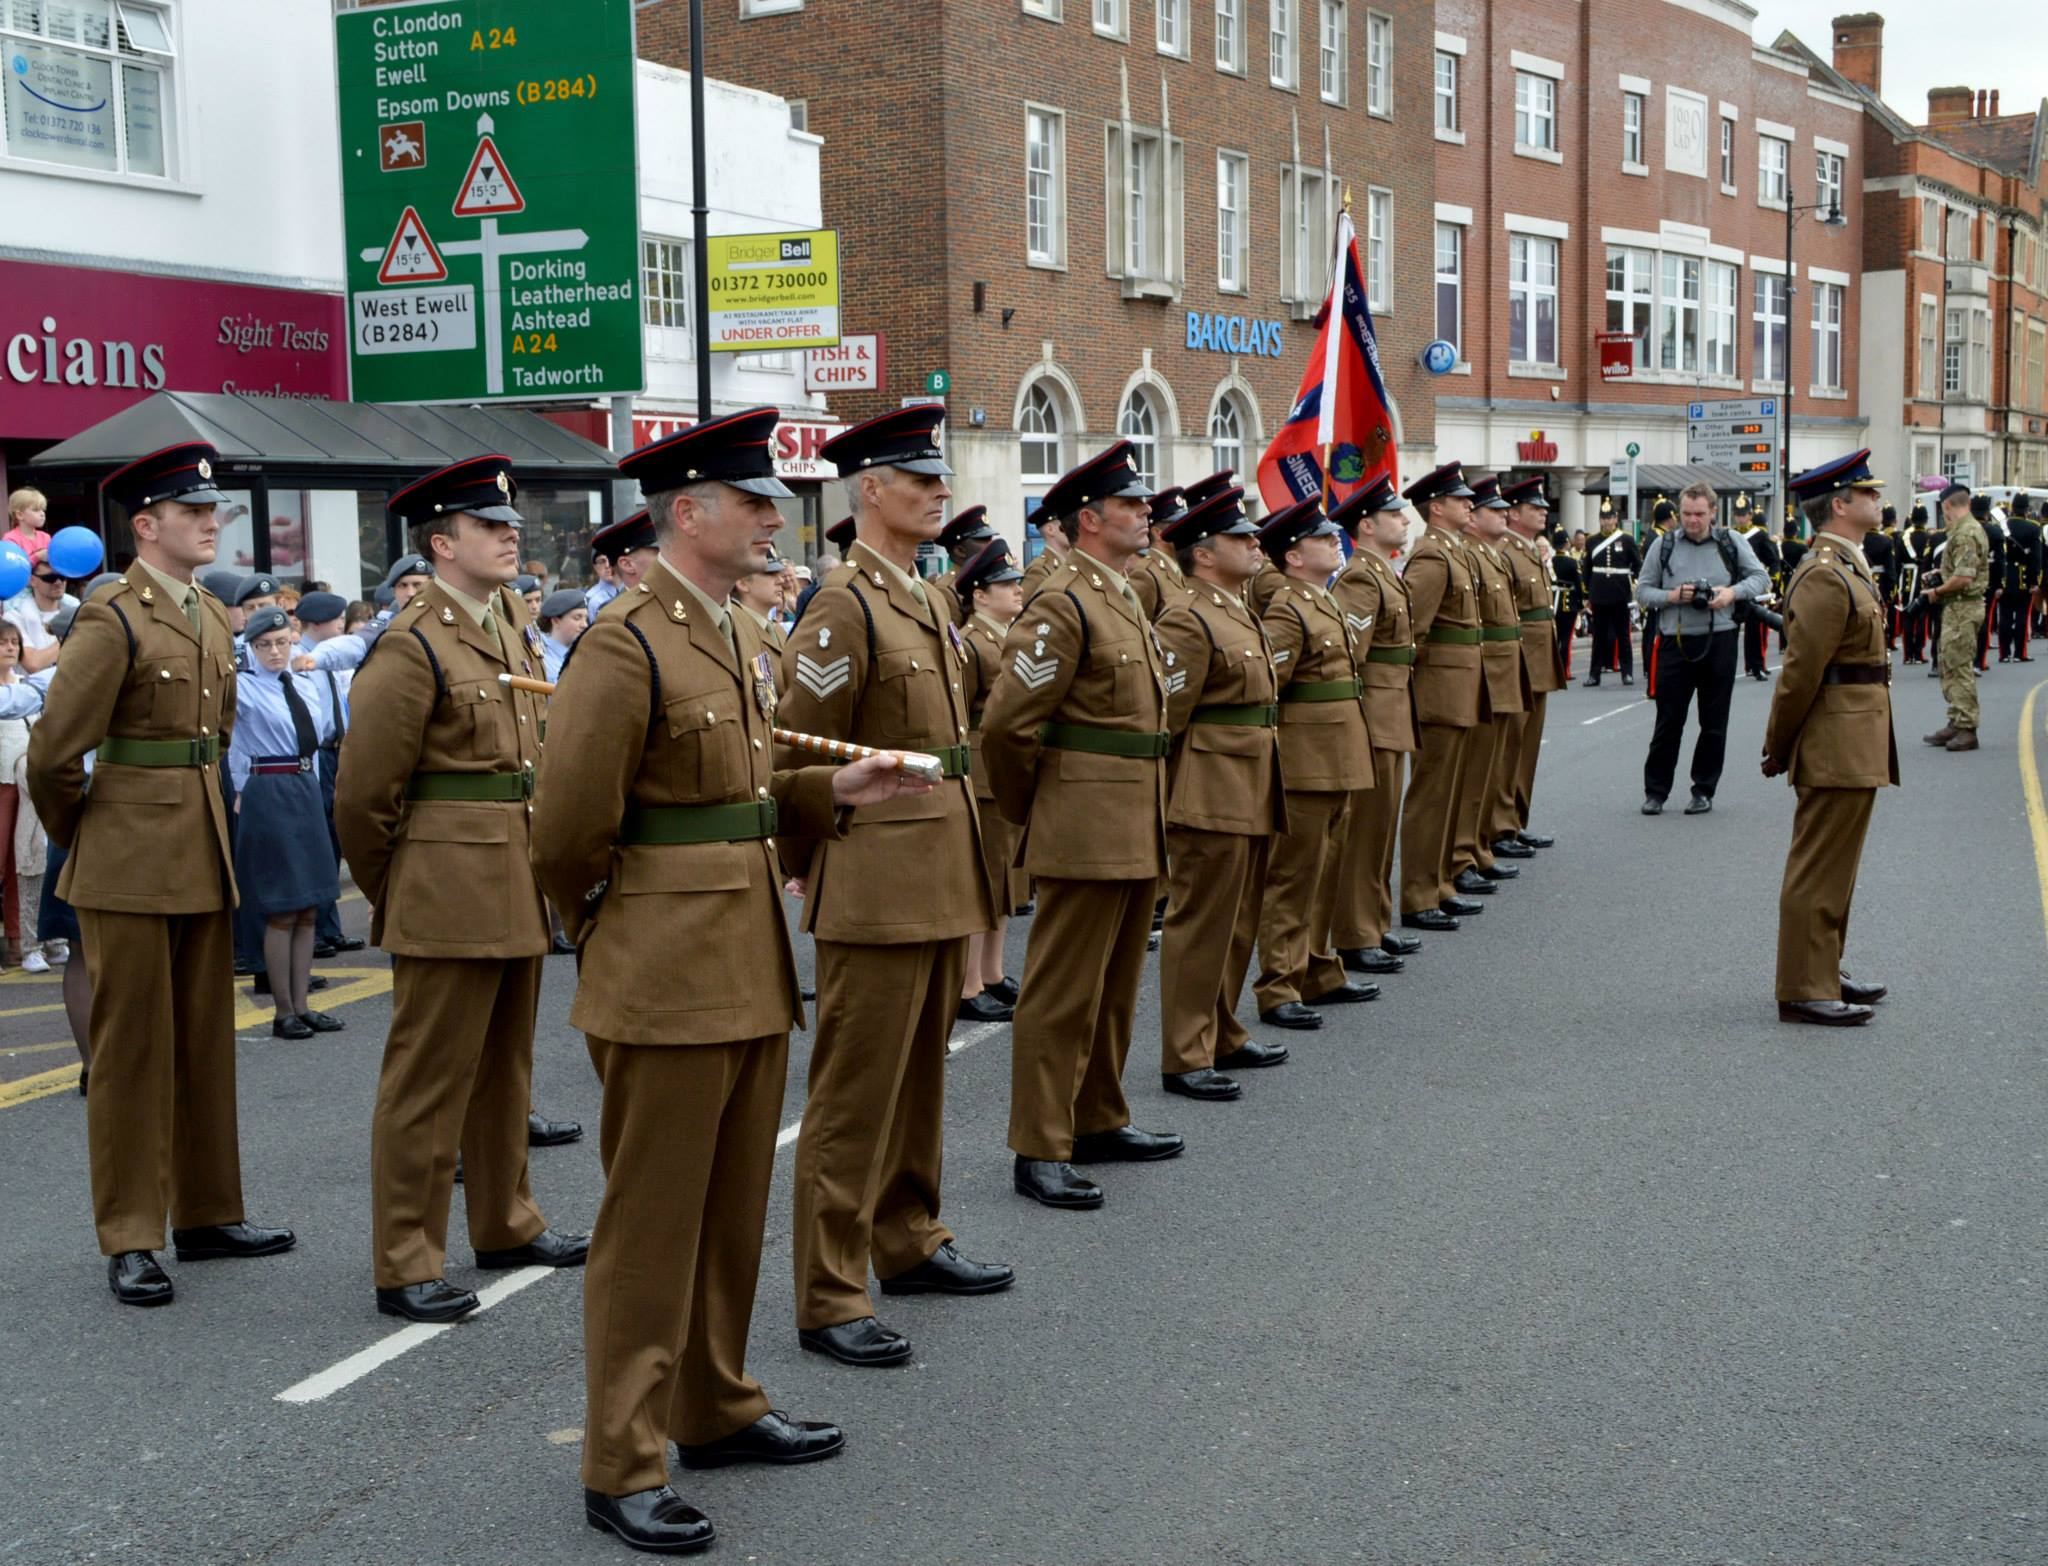 Freedom of Epsom & Ewell parade